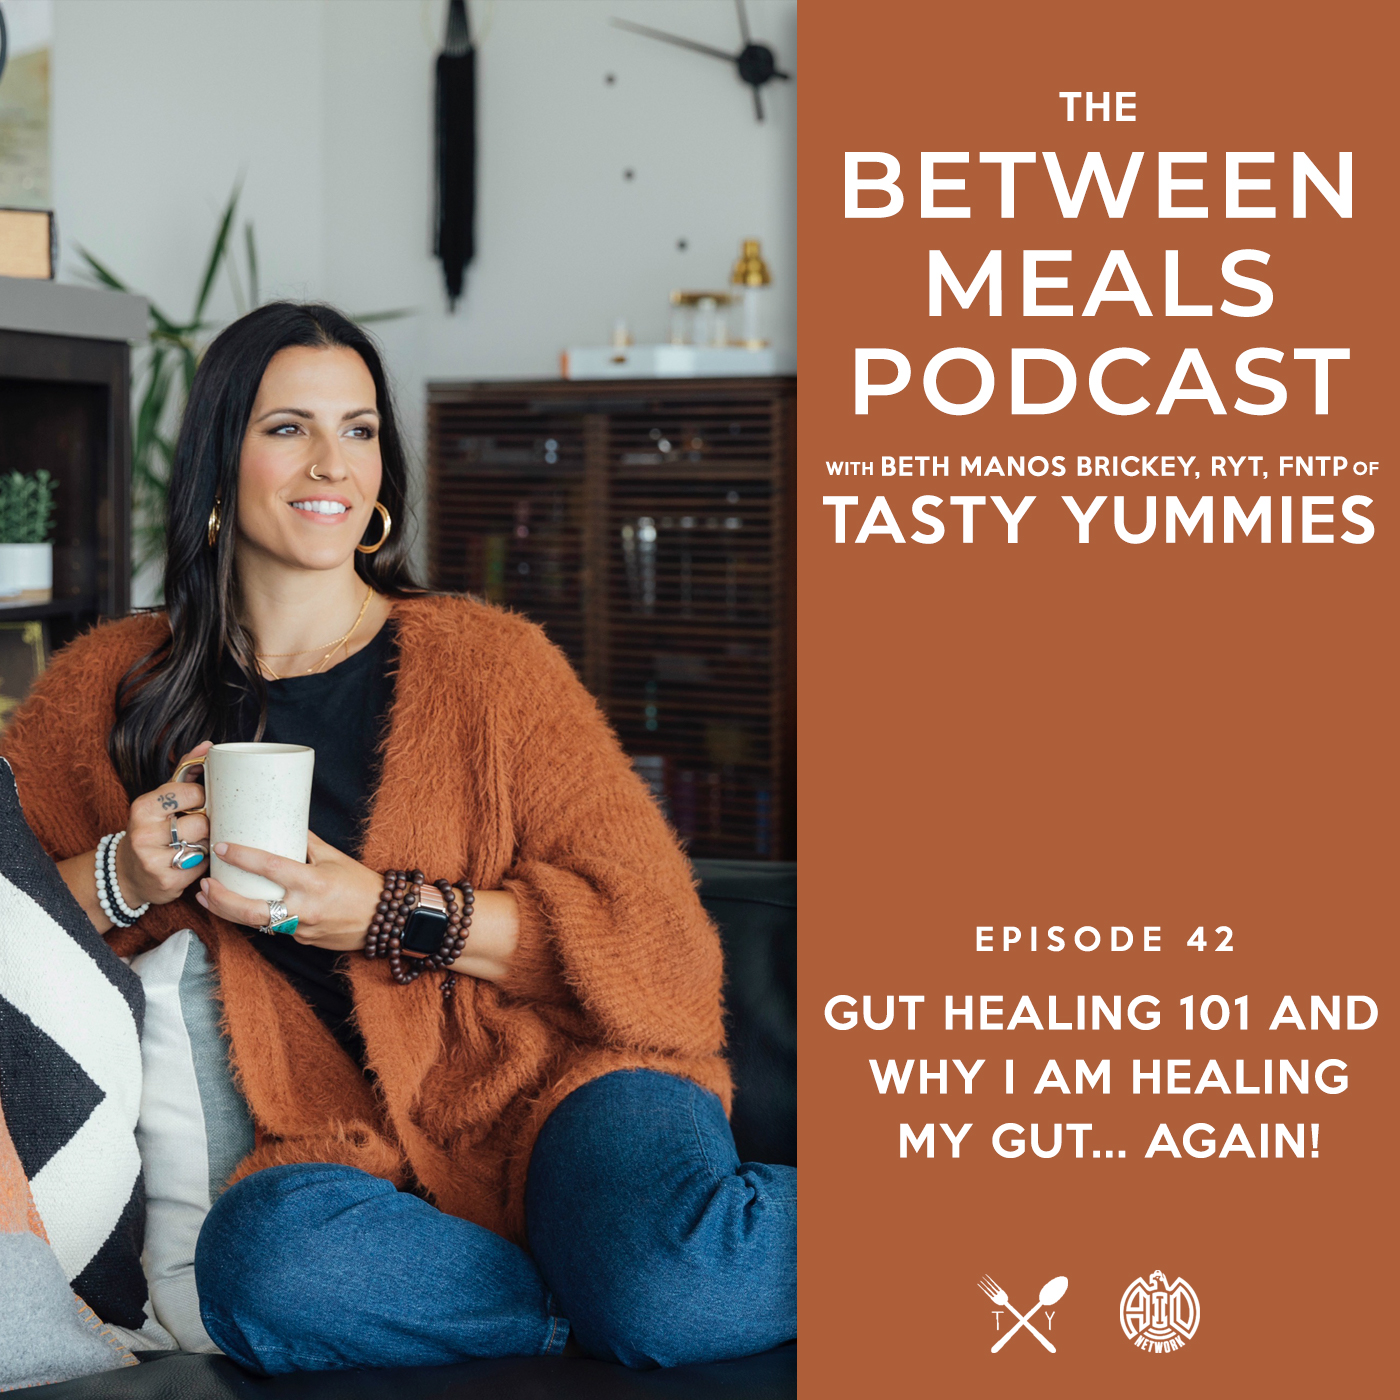 Between Meals Podcast. Episode 42: Gut Healing 101 and Why I am Healing My Gut… AGAIN!